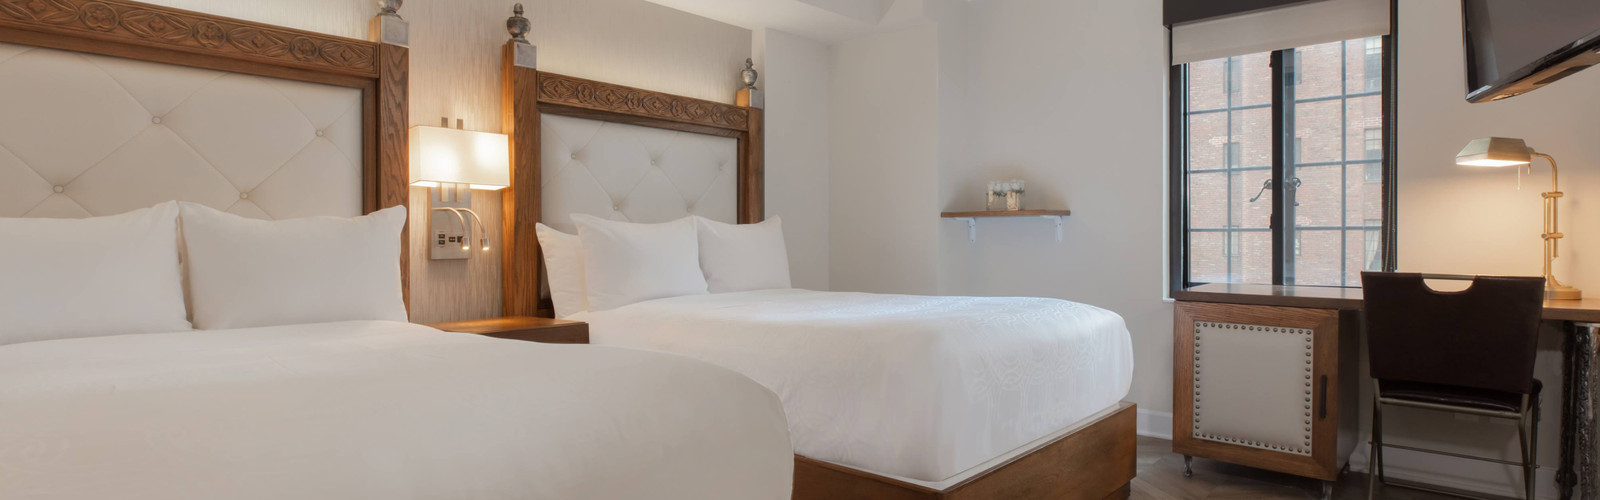 Luxury Hotels Rooms Suites NYC | Westgate New York Grand Central